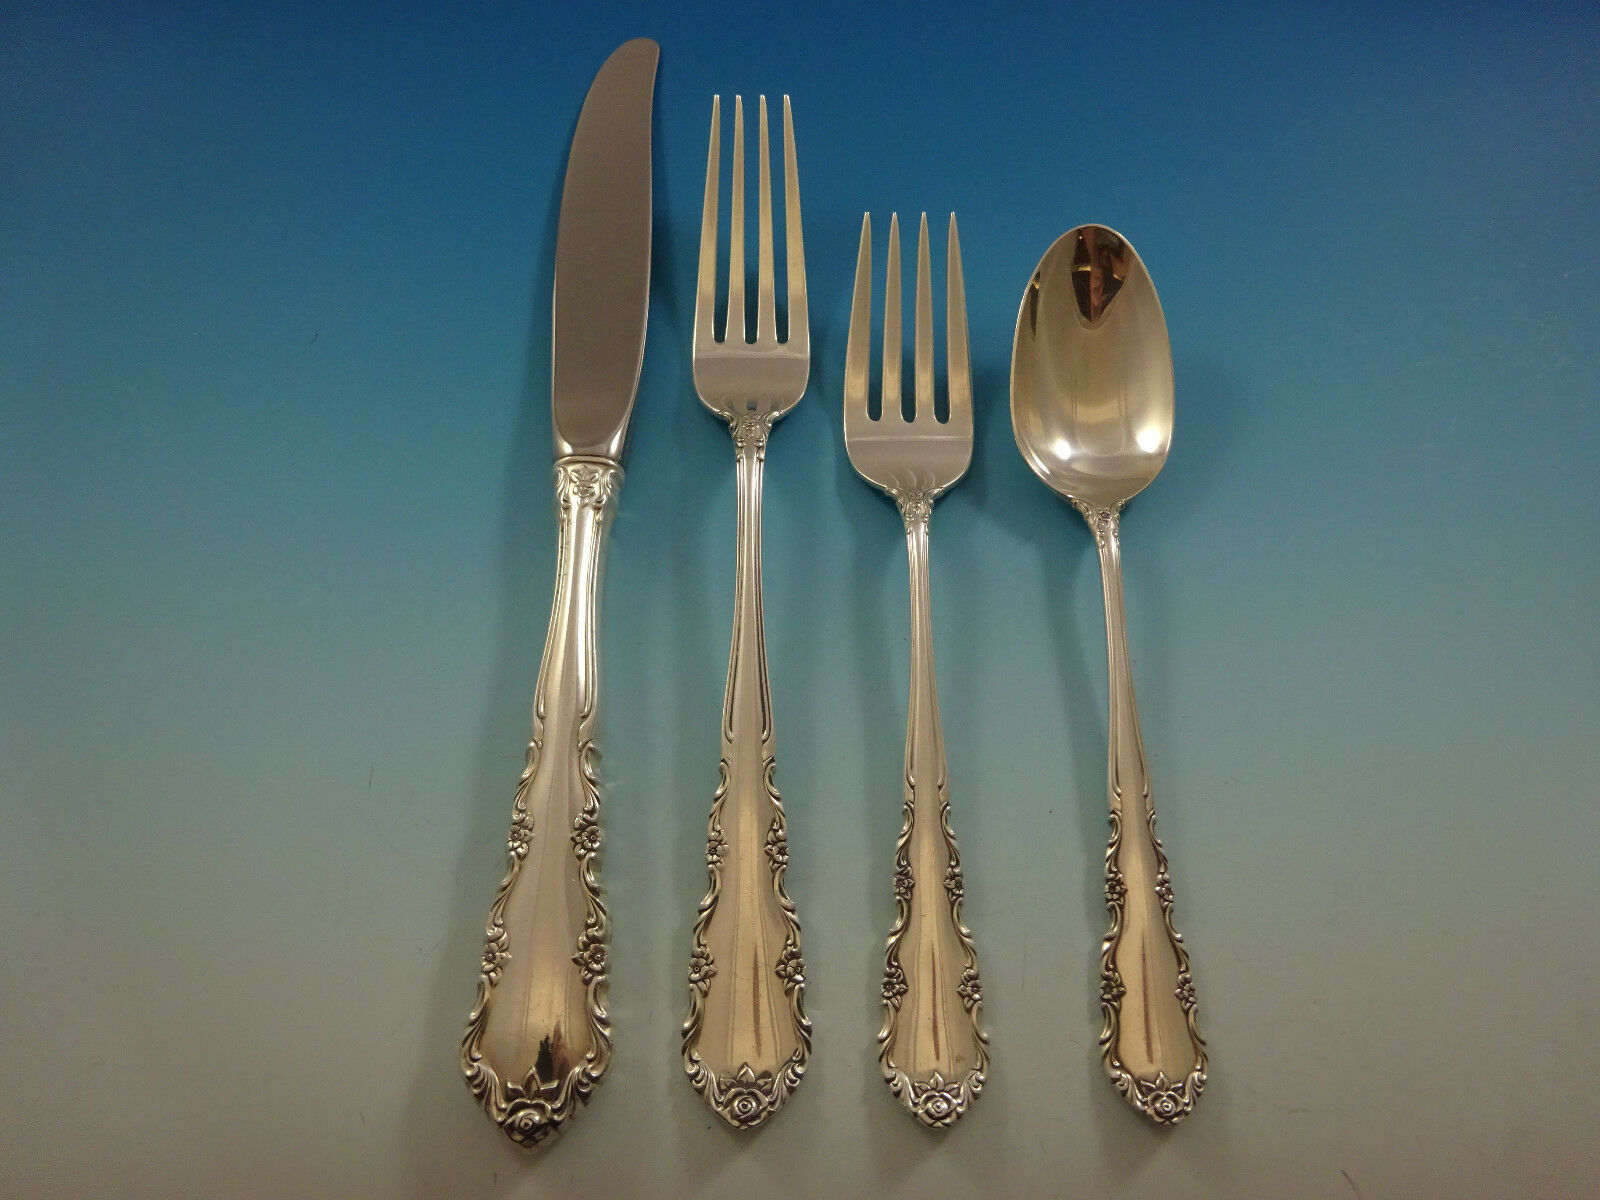 Shenandoah by Wallace Sterling Silver Flatware Set For 12 Service 57 Pieces image 2